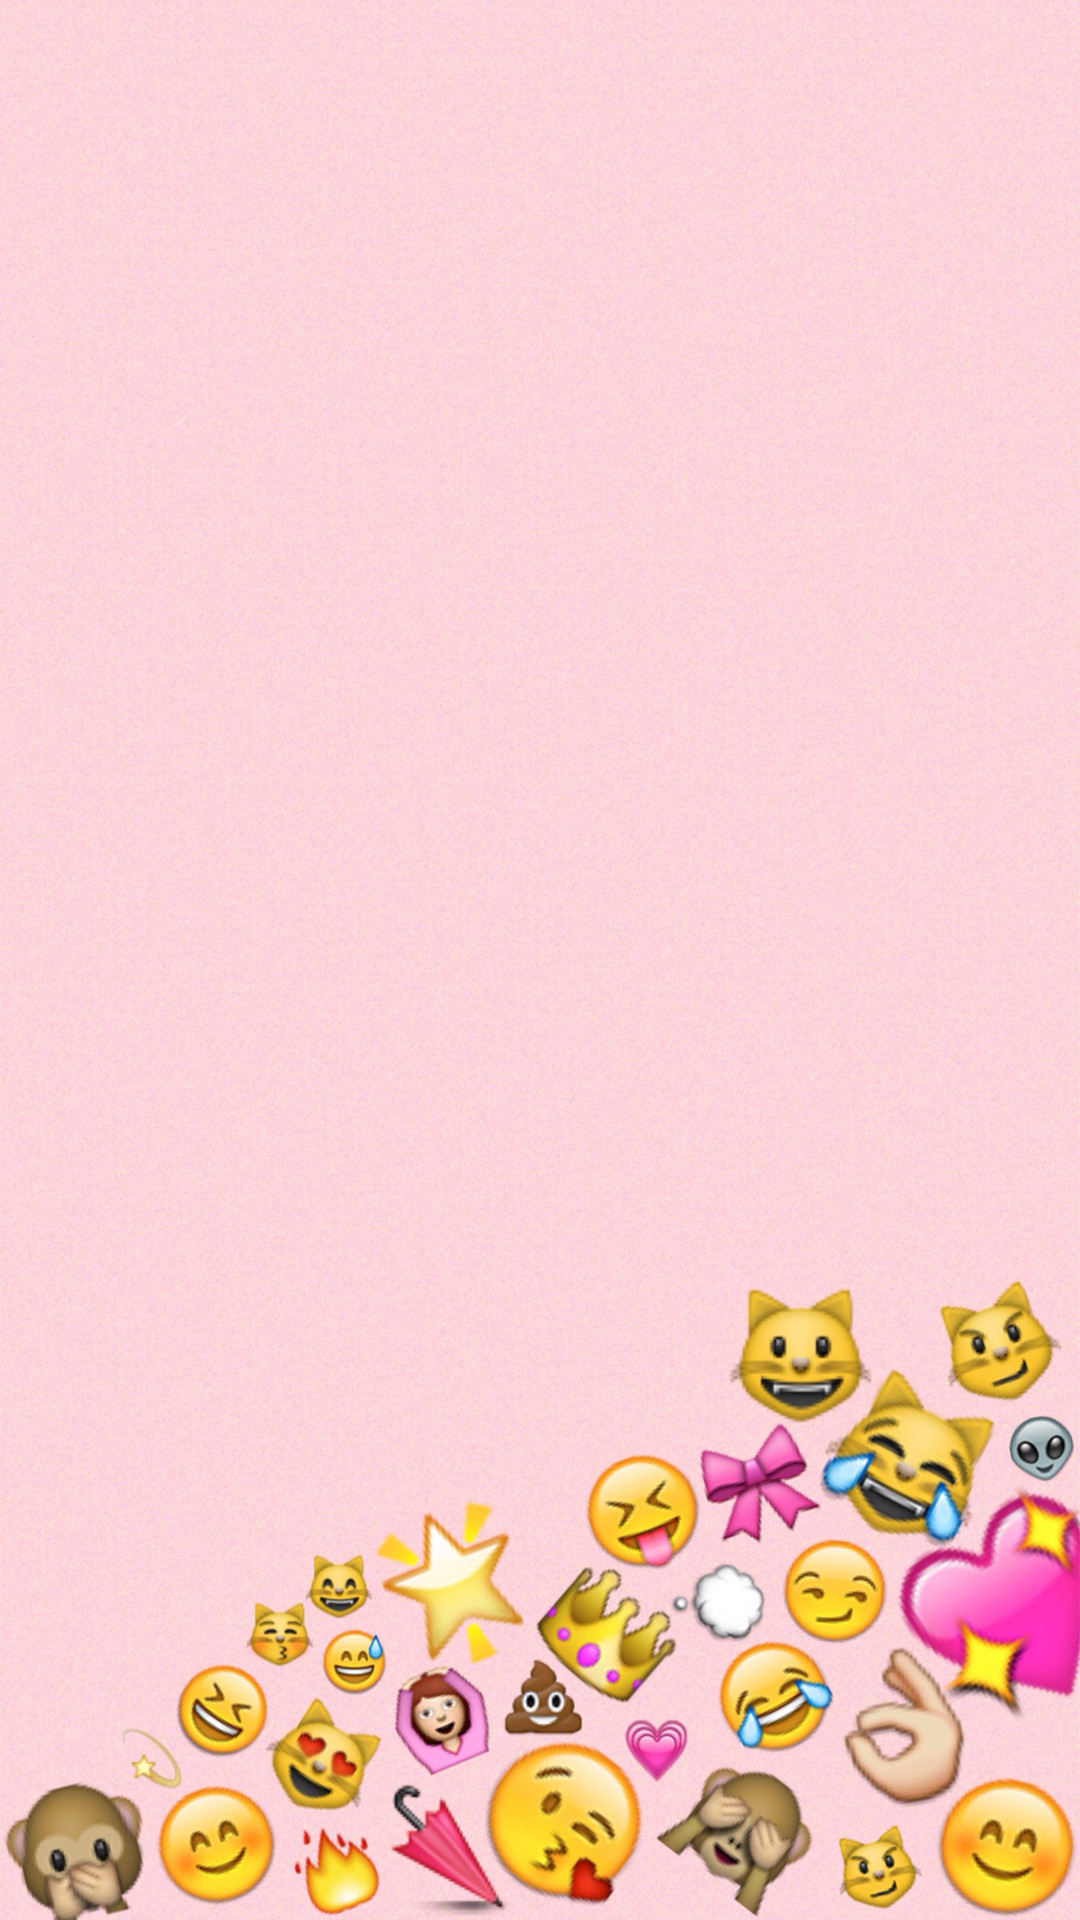 Cute Wallpapers Iphone 6 Plus Monkey Emoji Wallpaper 46 Images